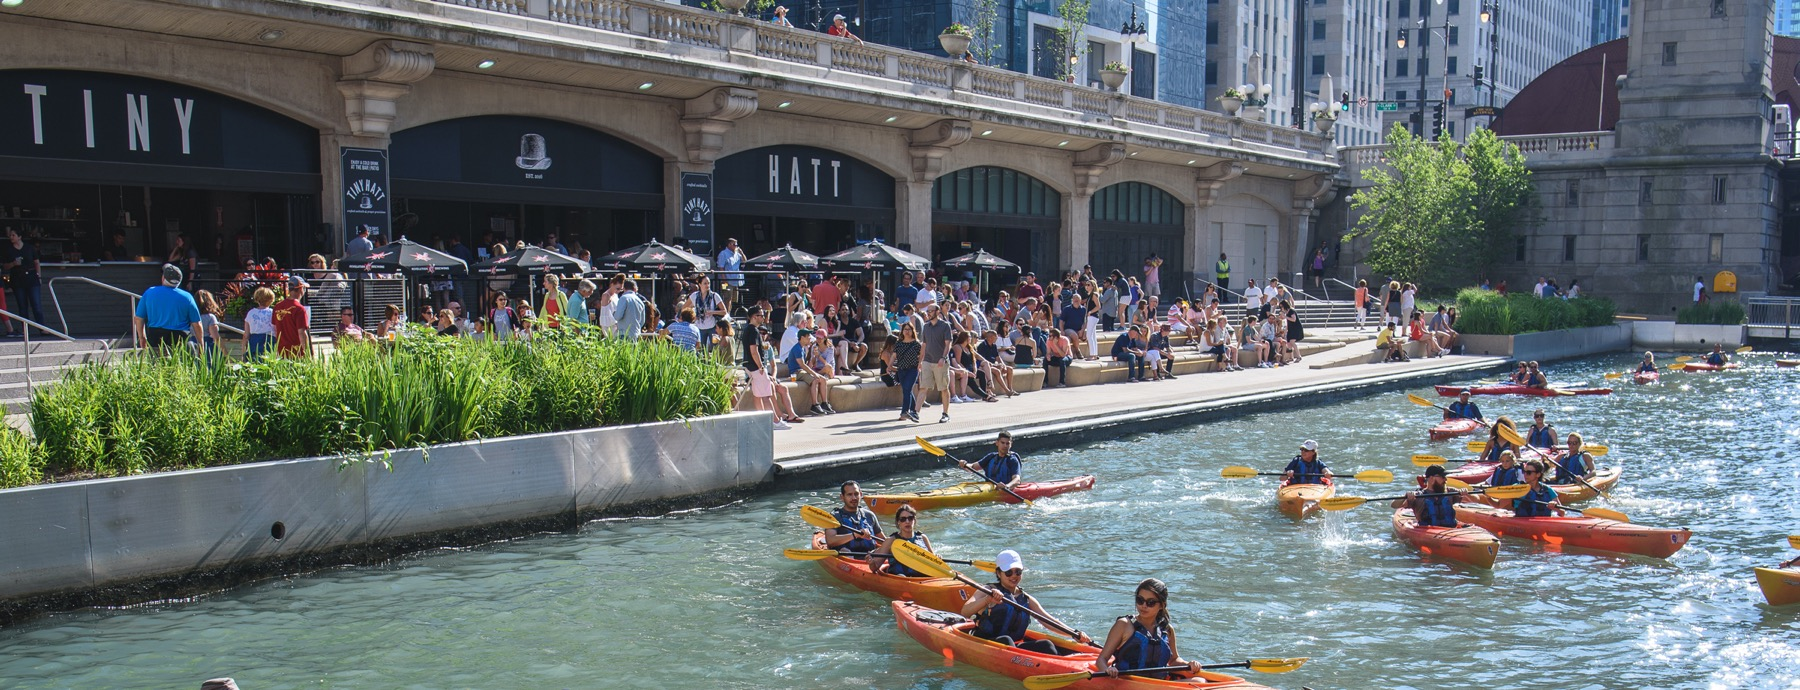 People kayaking in the river along side the Chicago riverwalk